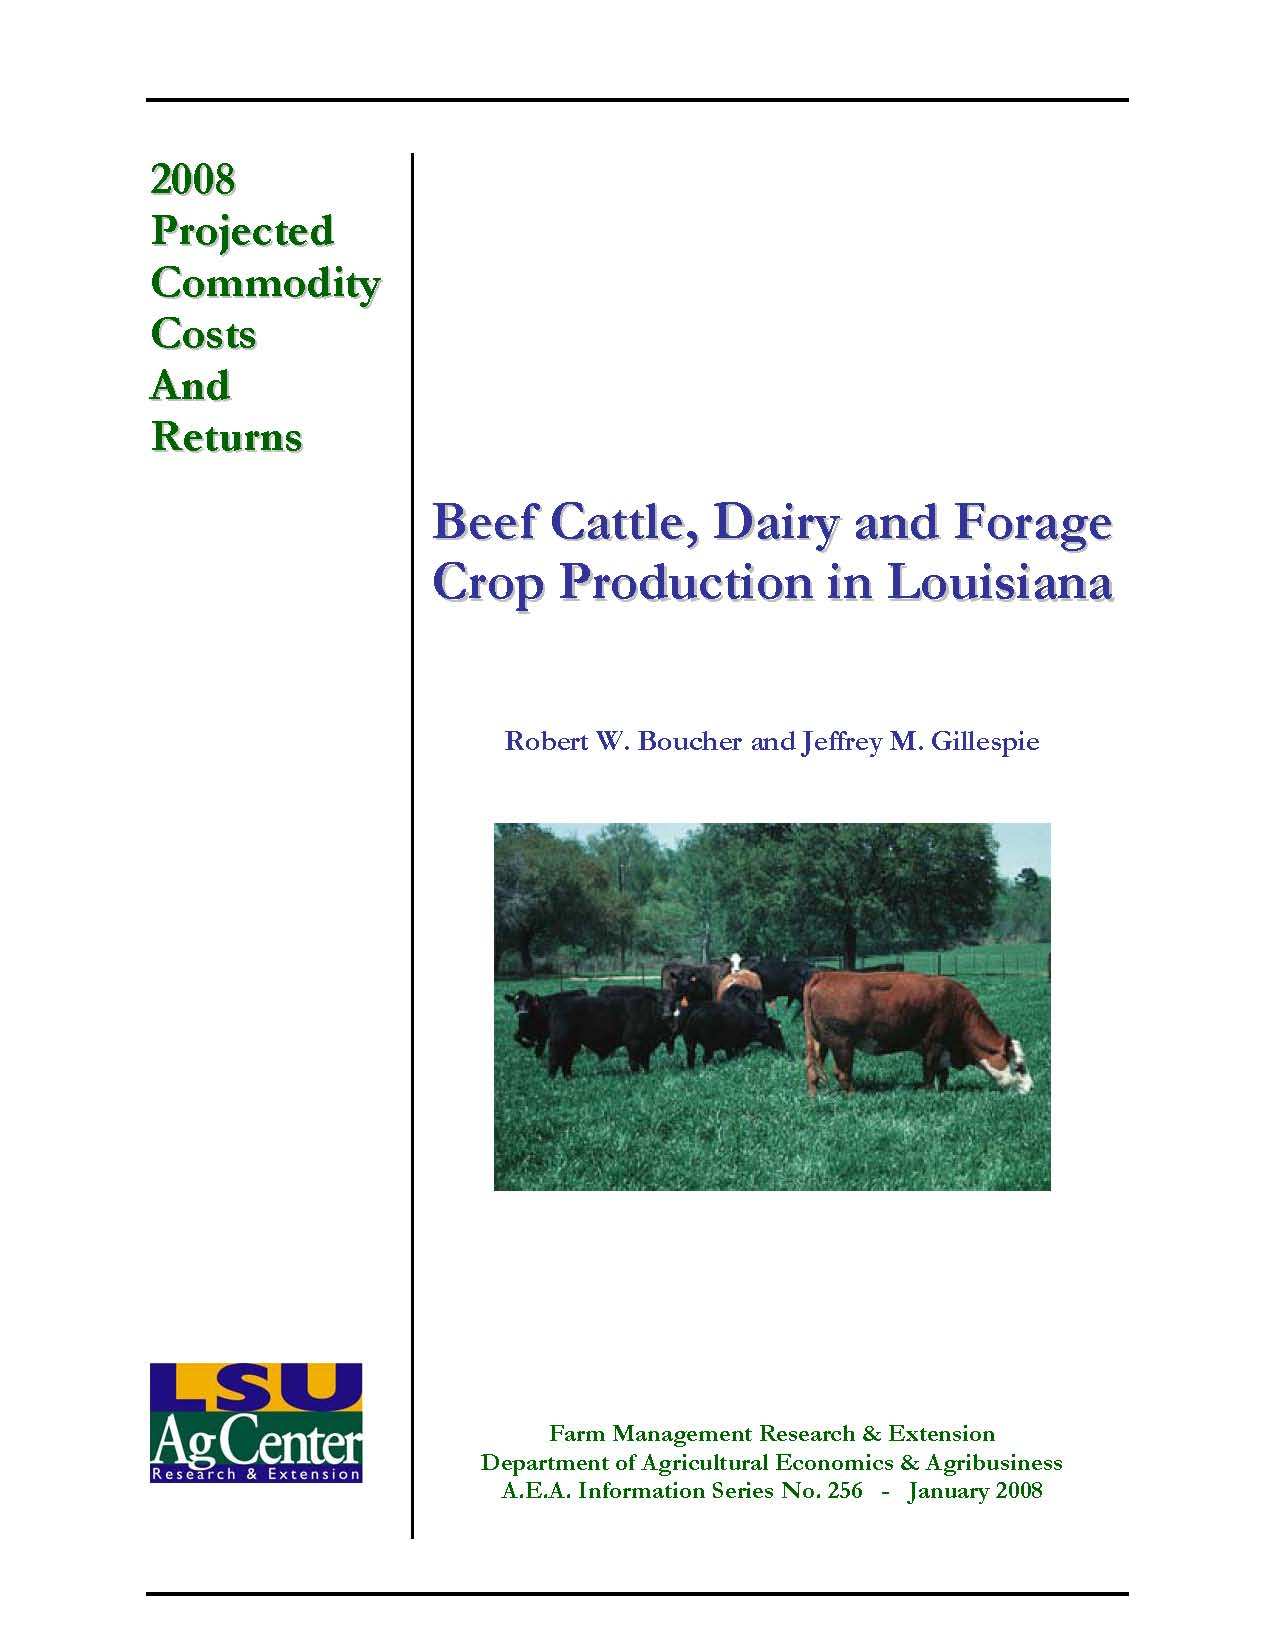 2008 Projected Production Costs for Beef Cattle Dairy Cattle and Forage